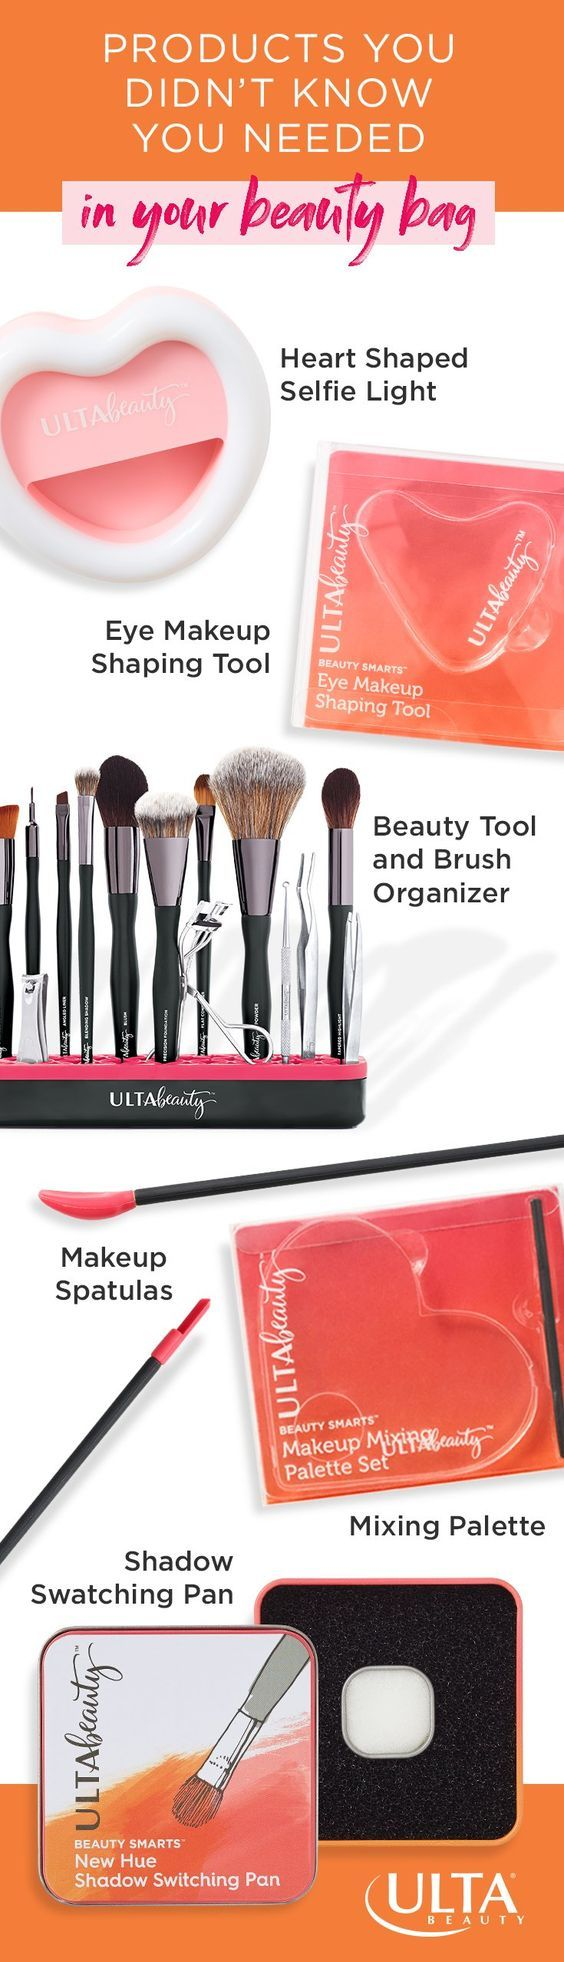 Meet your beauty bag lifesavers. Tools and products that help you minimize how m…